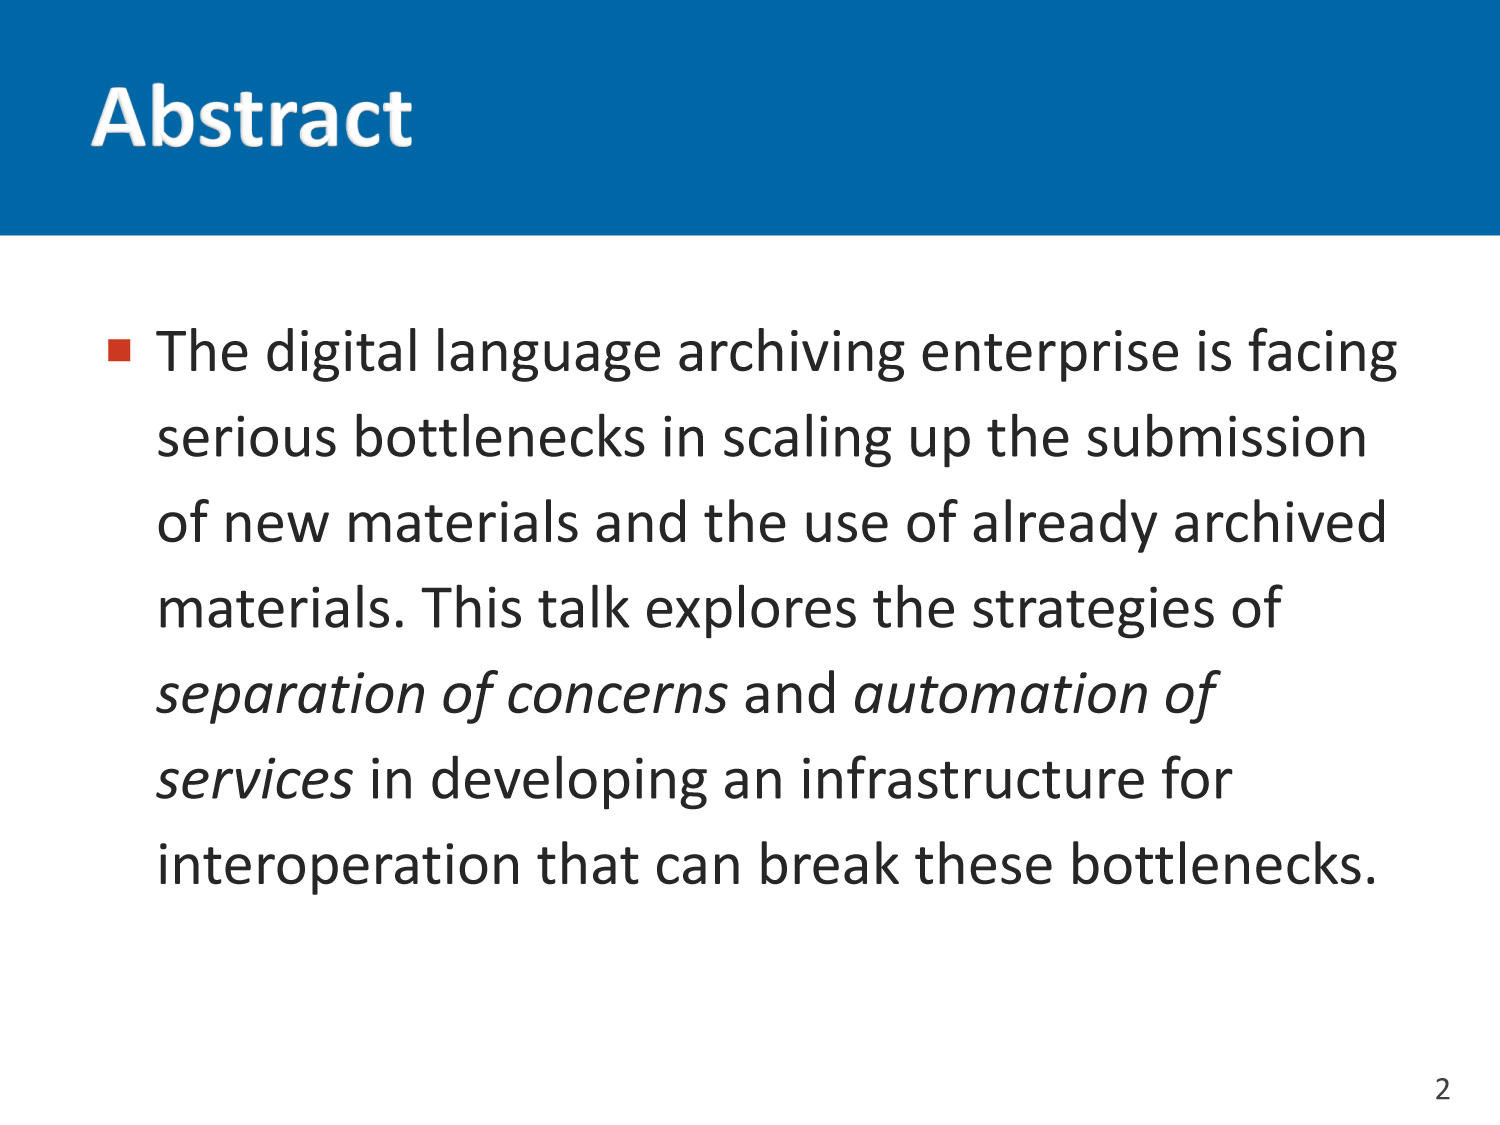 Developing infrastructure for interoperating digital language archives                                                                                                      2